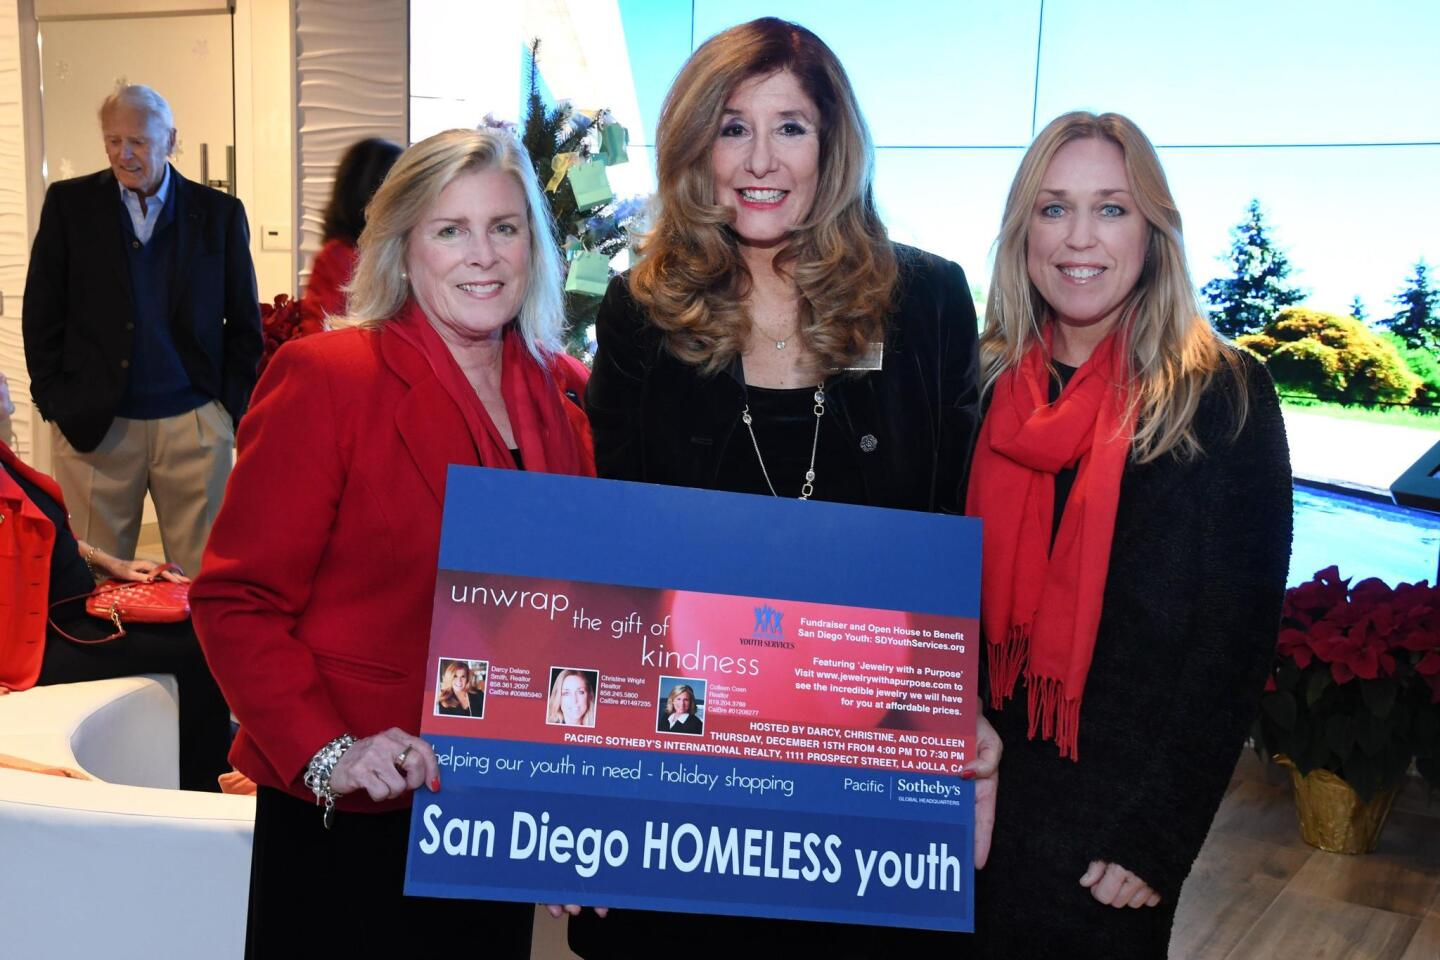 Pacific Sotheby's International Realty hosted a fundraising party to benefit San Diego Youth Services, Dec. 15, 2016 at the real estate firm's 1111 Prospect St. offices in La Jolla.